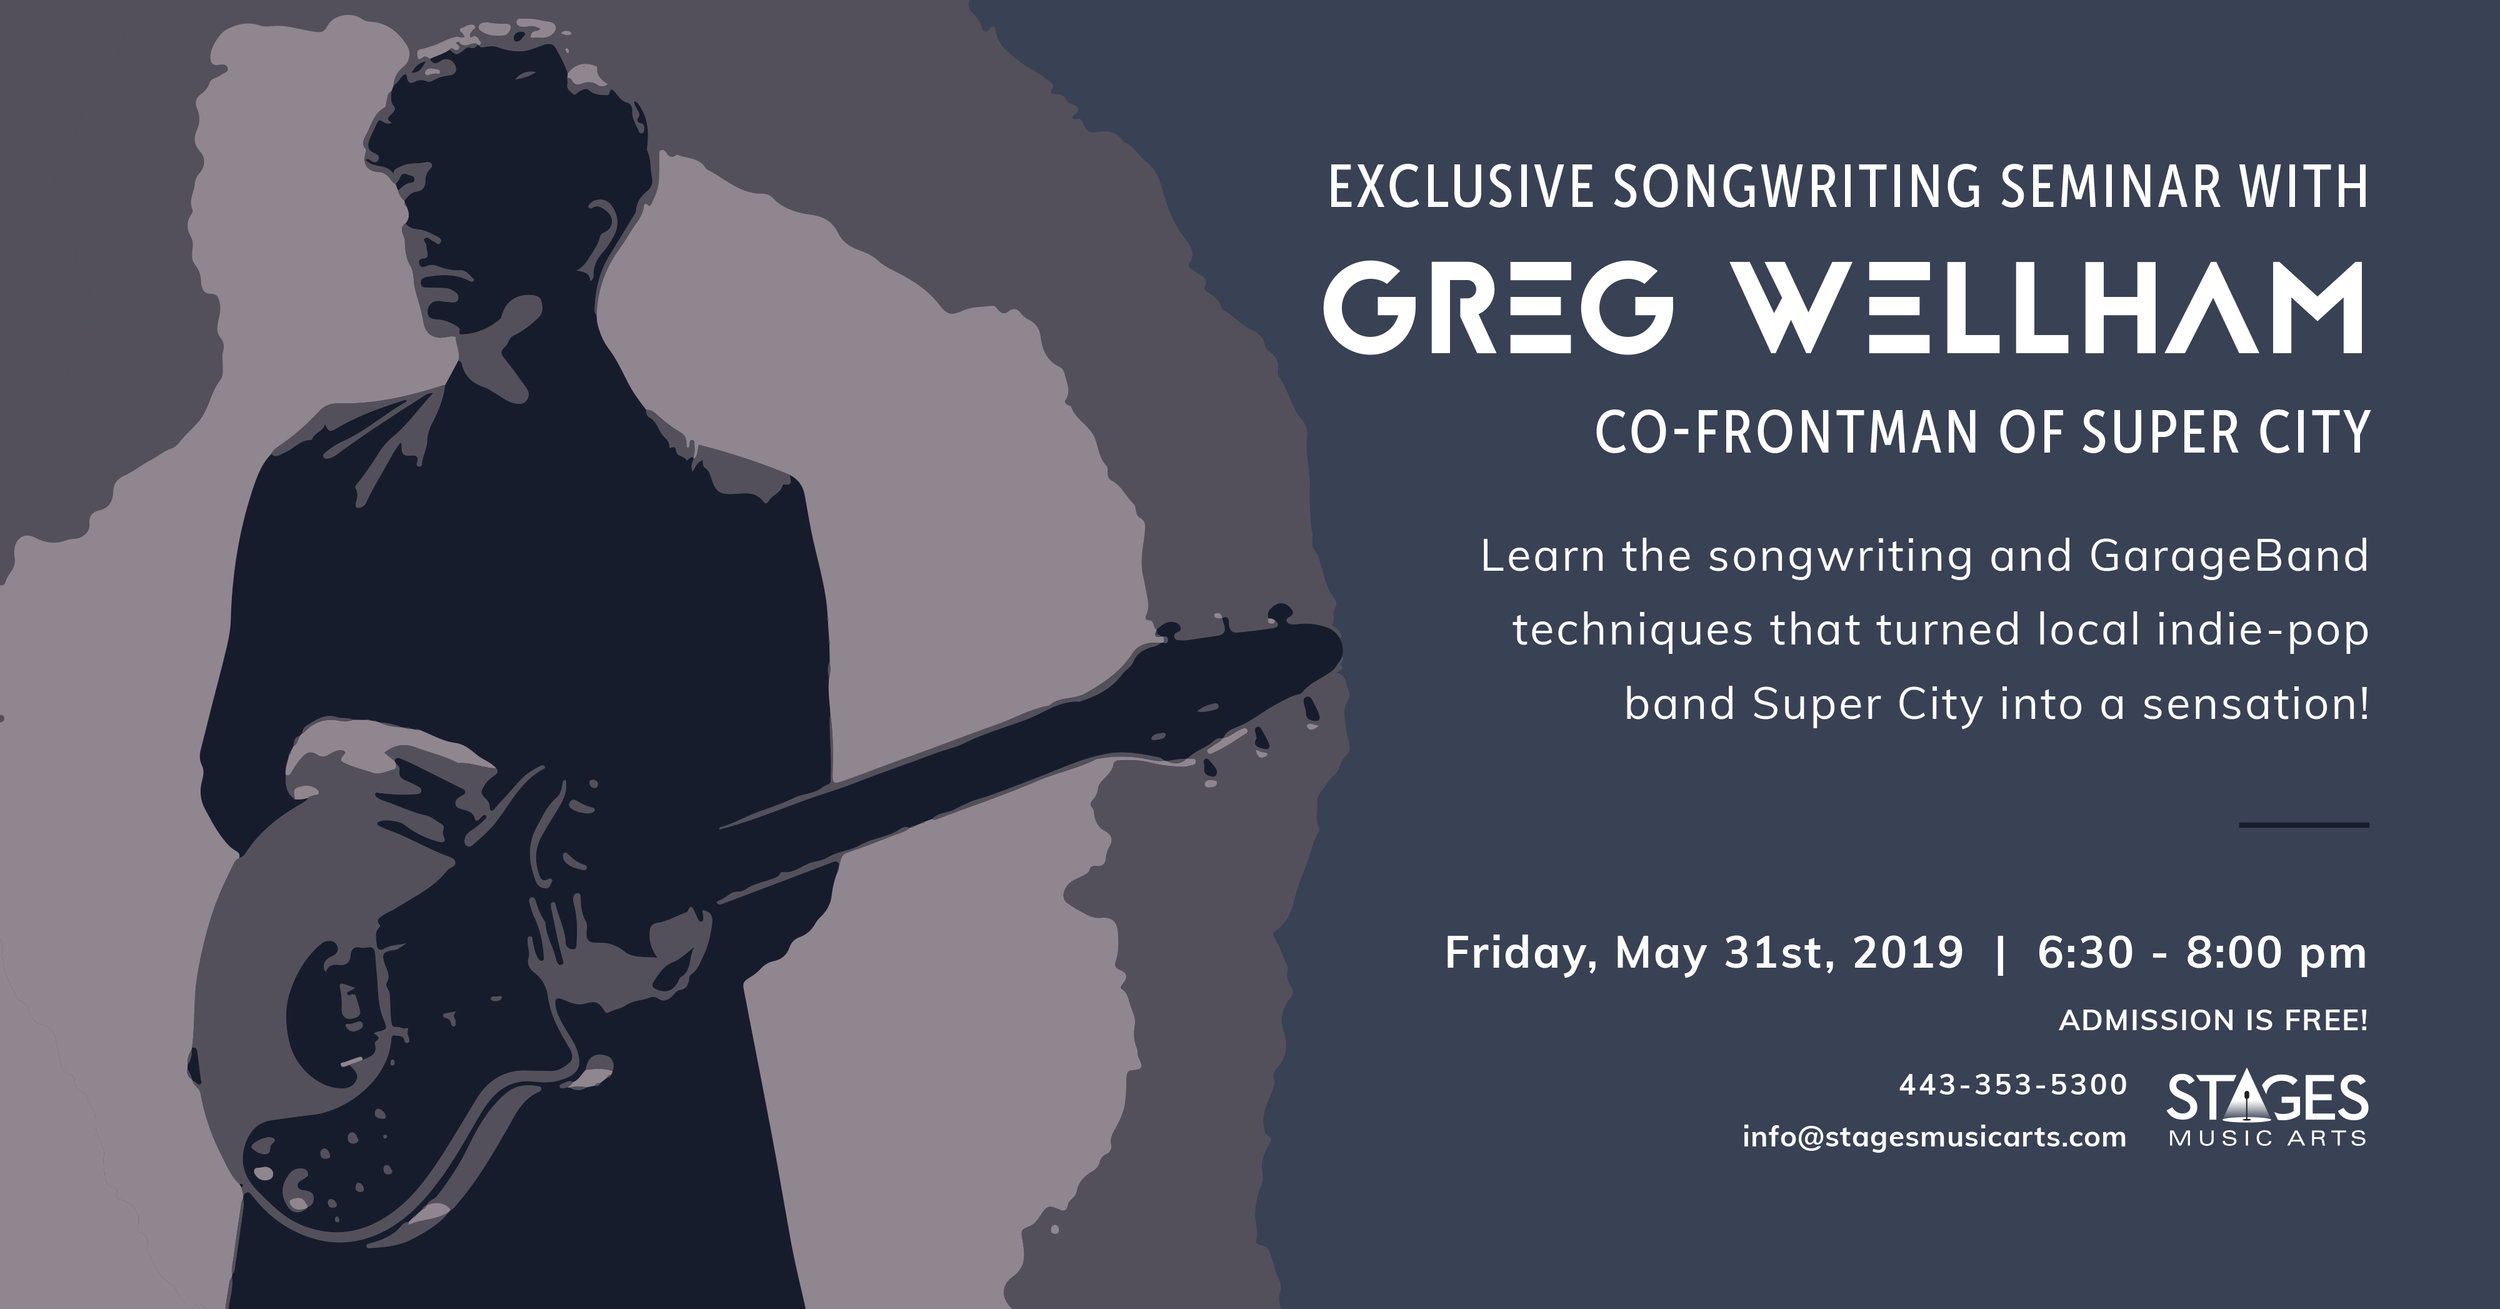 Songwriting Seminar with Greg Wellham - Friday, May 31st6:30PM – 8:00PMStages Music Arts (map)Learn the songwriting and GarageBand techniques that turned this Baltimore indie-pop band into a sensation!